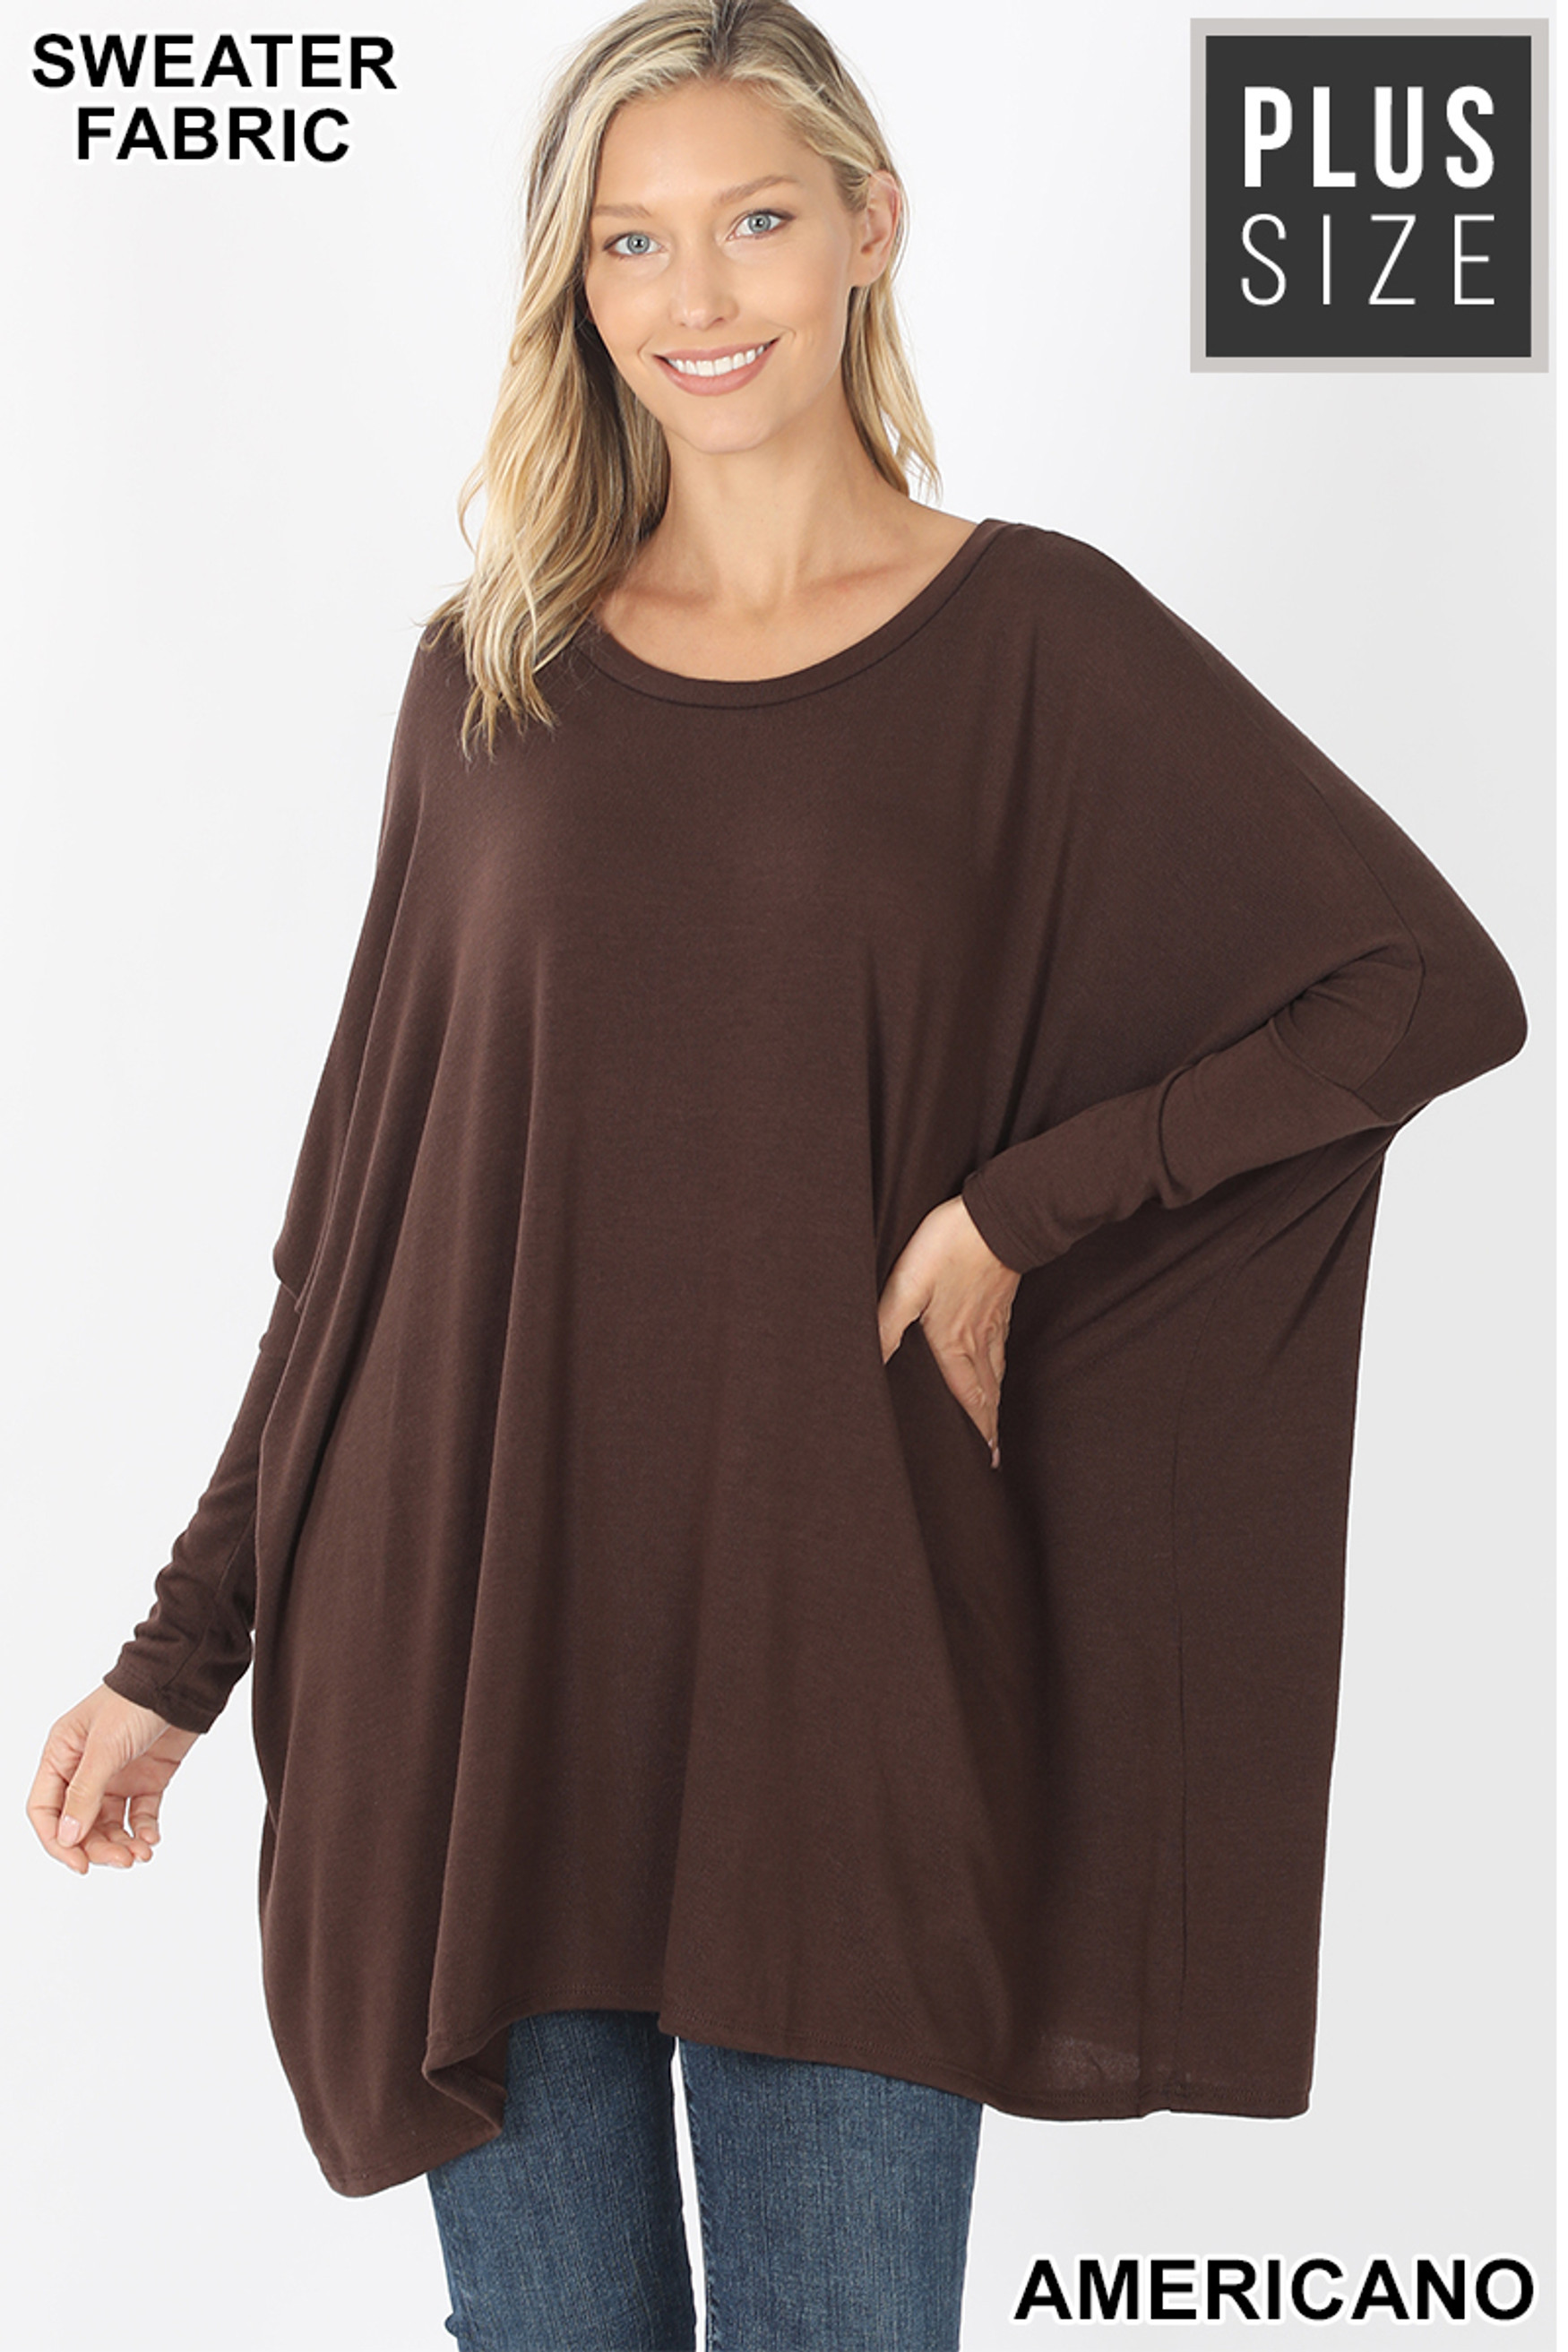 Front view of Americano Oversized Round Neck Poncho Plus Size Sweater